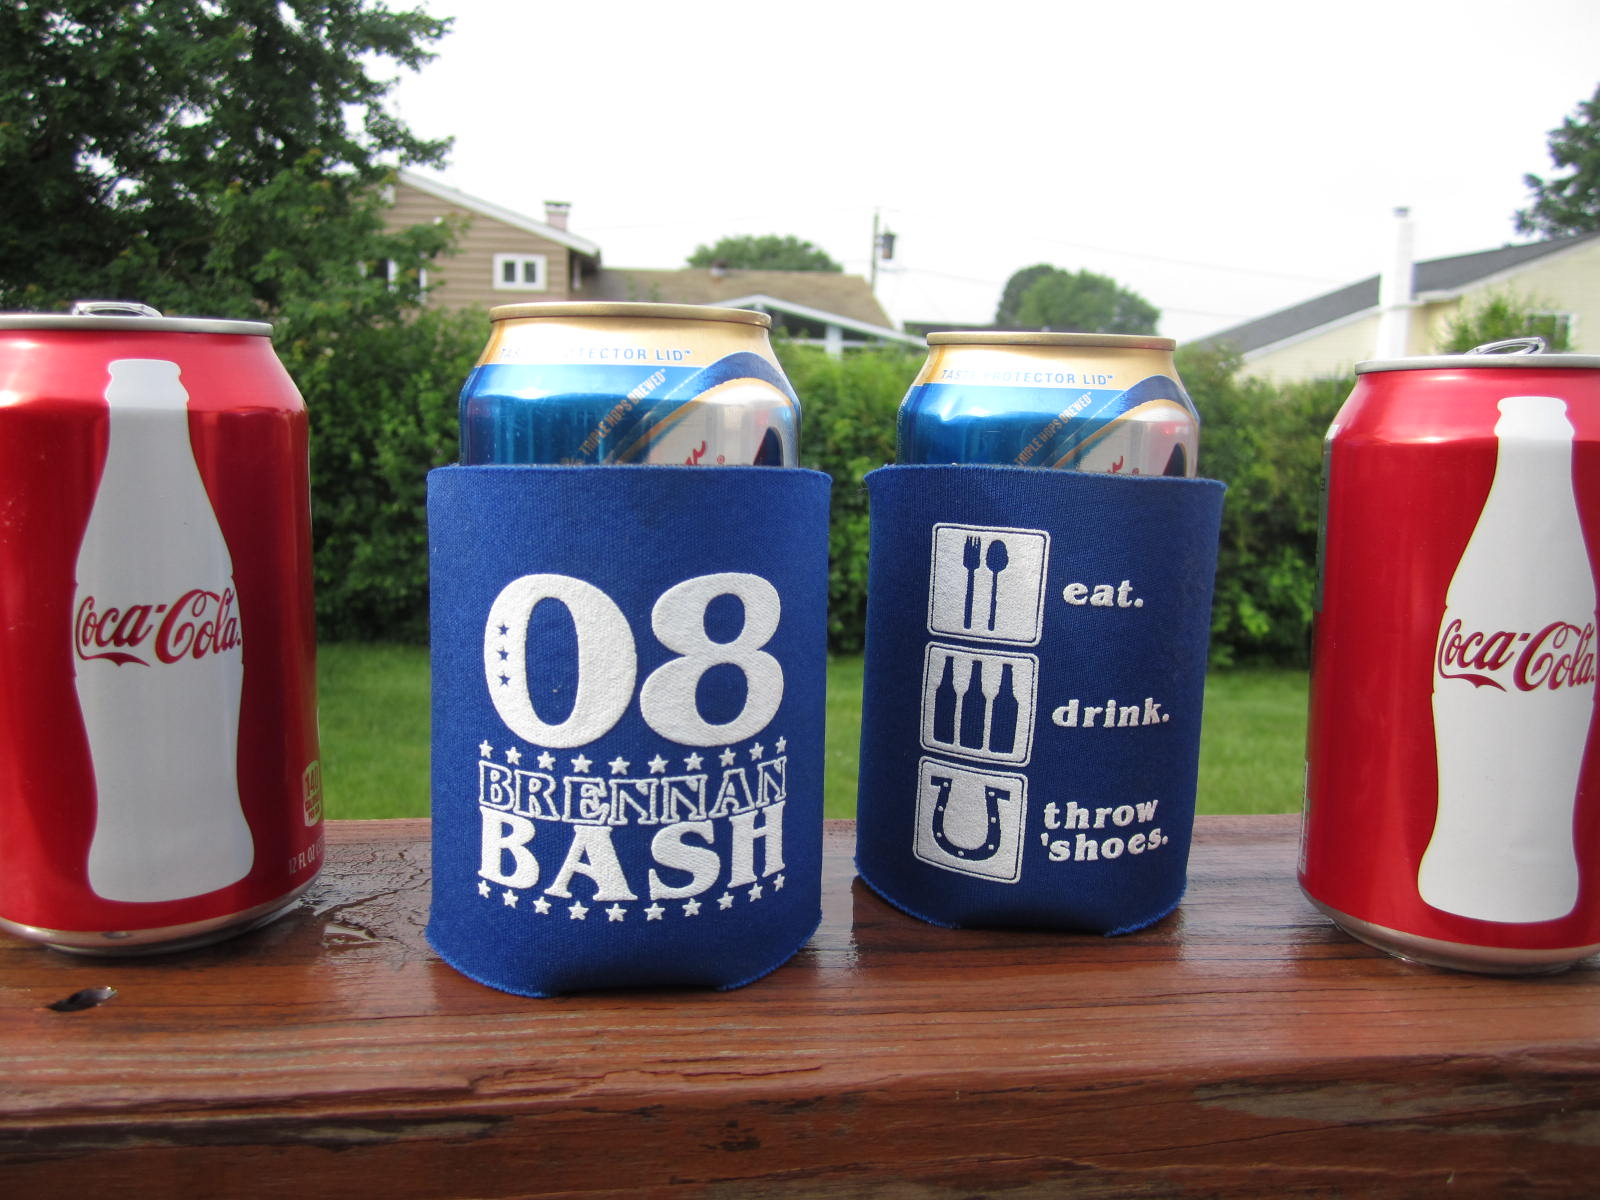 Custom T-Shirts for Brennan Bash Drink Koozies - Shirt Design Ideas